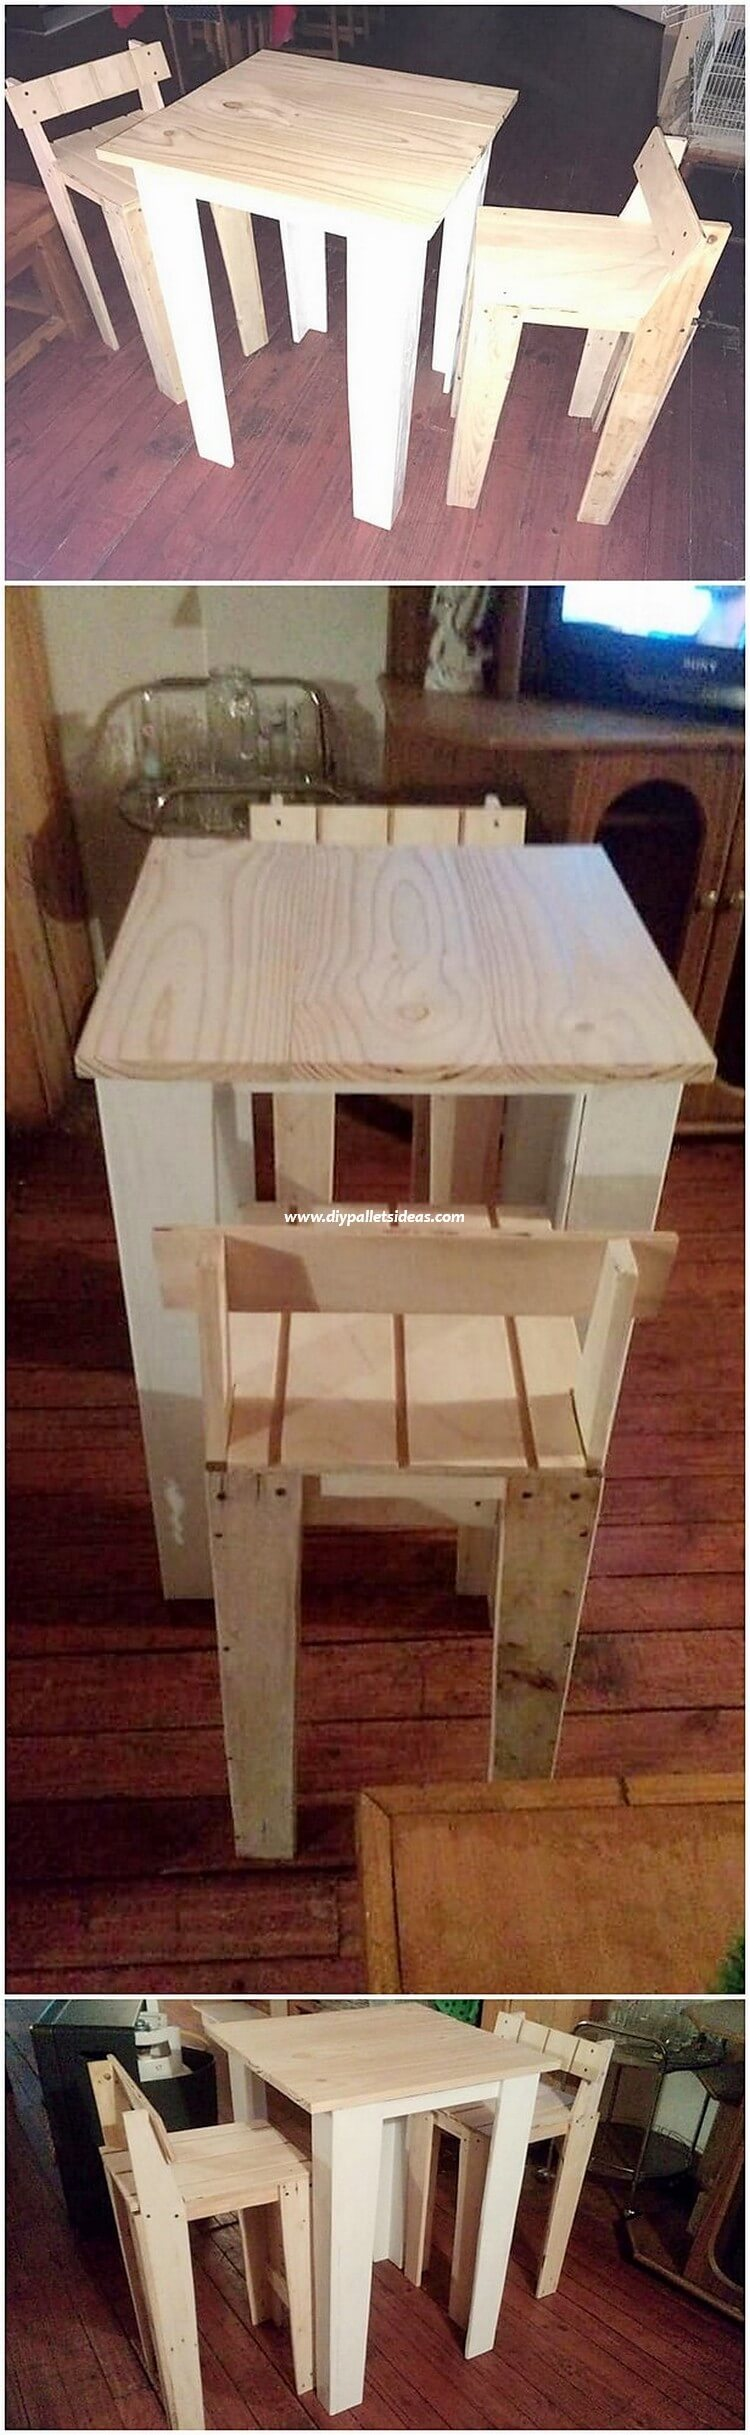 Wooden Pallet Chairs and Table